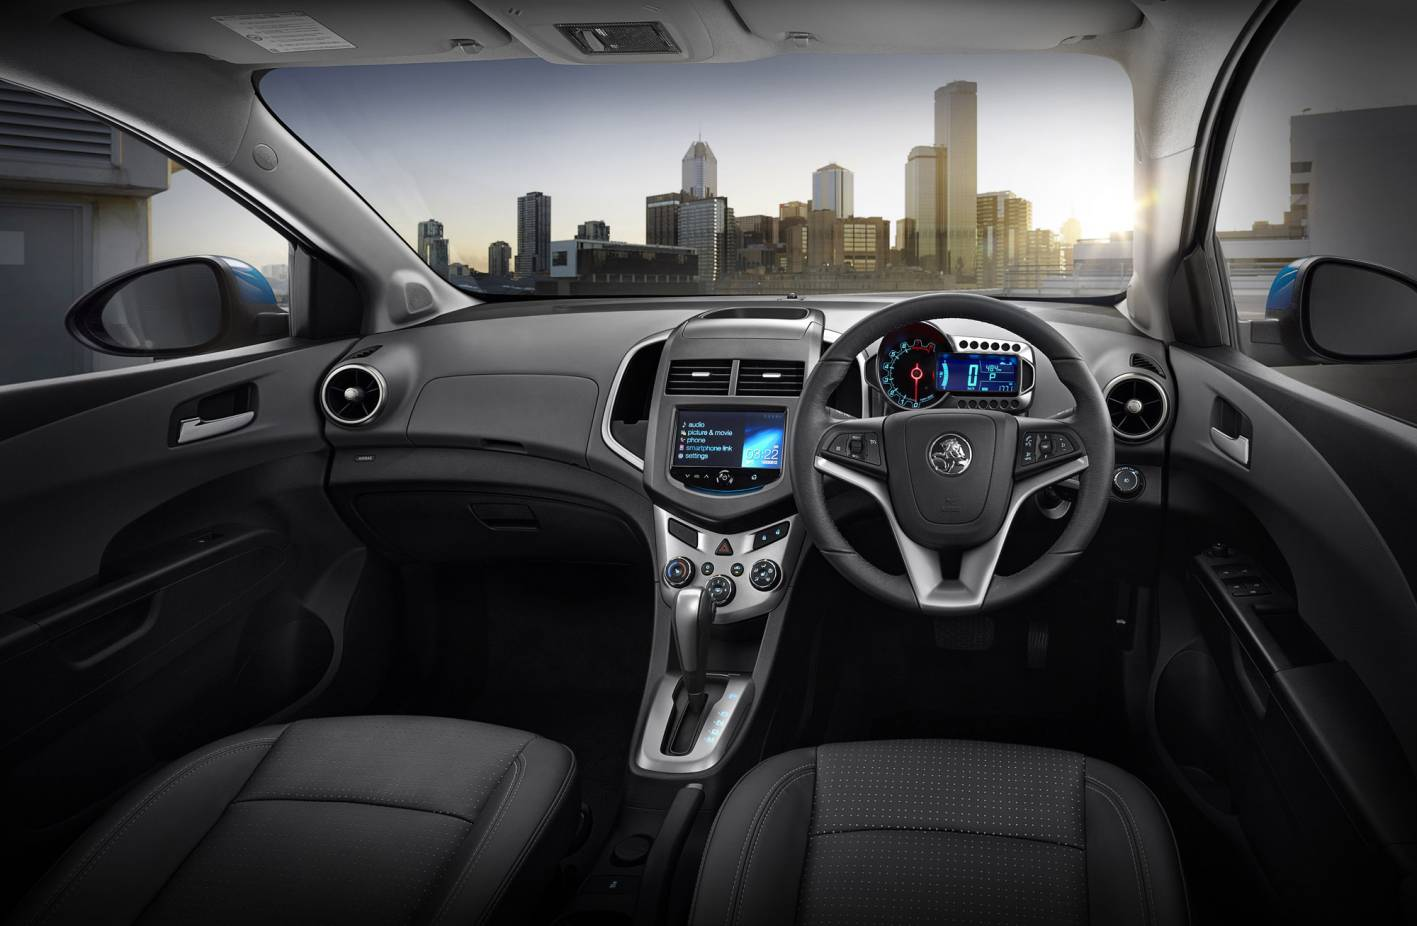 Holden Barina Review 2013 Barina Sedan And Hatch